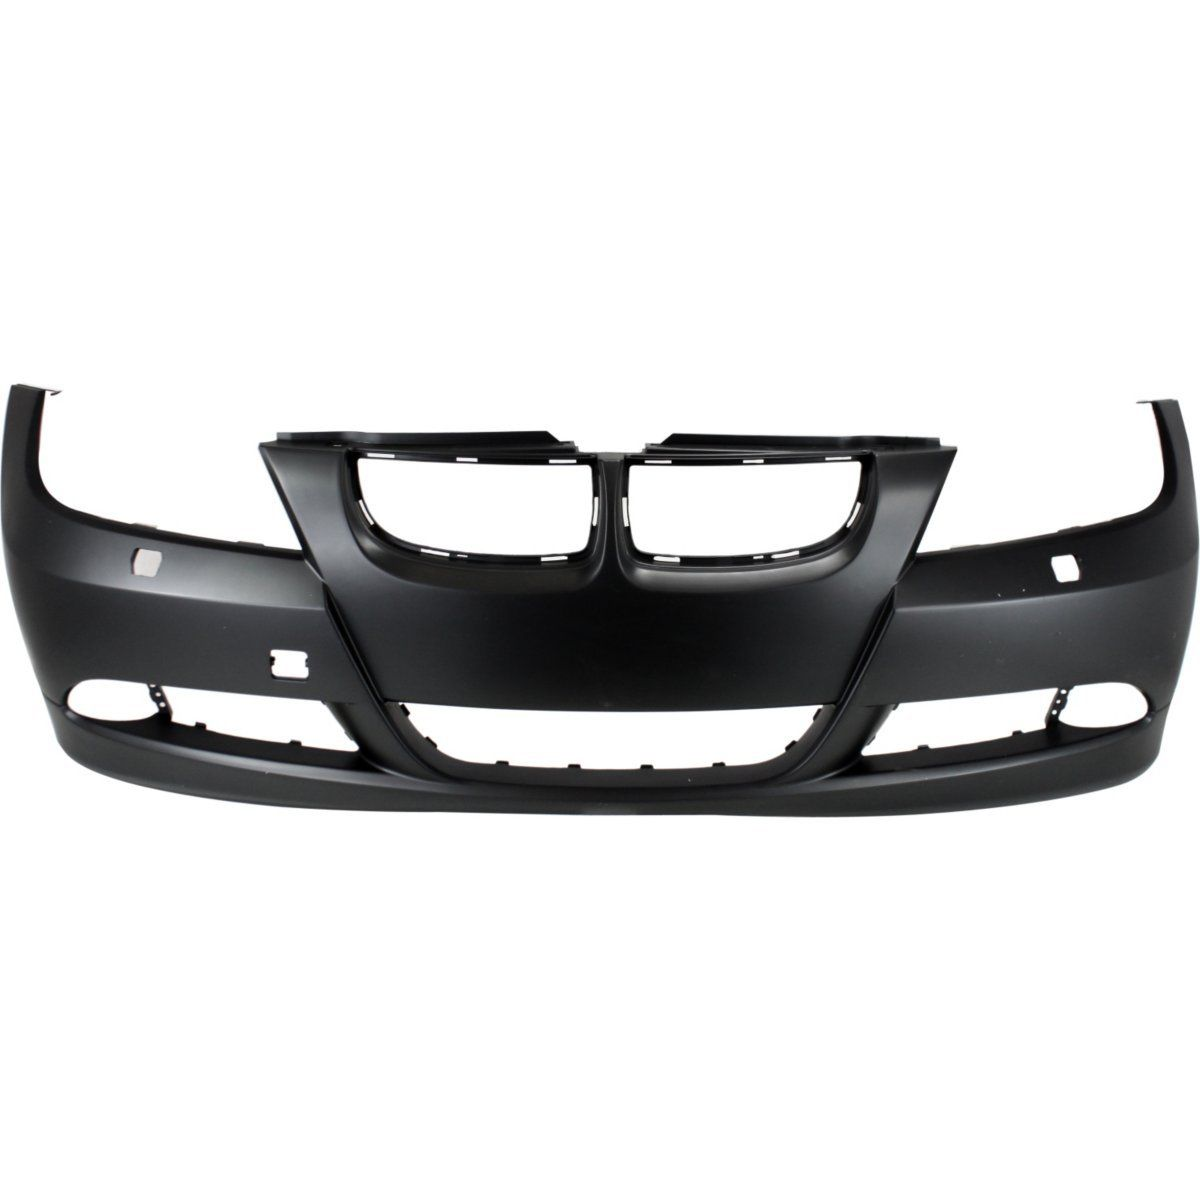 Bumper Cover For 2009-12 BMW 328i Sedan Wagon With Tow Hook Cover Front